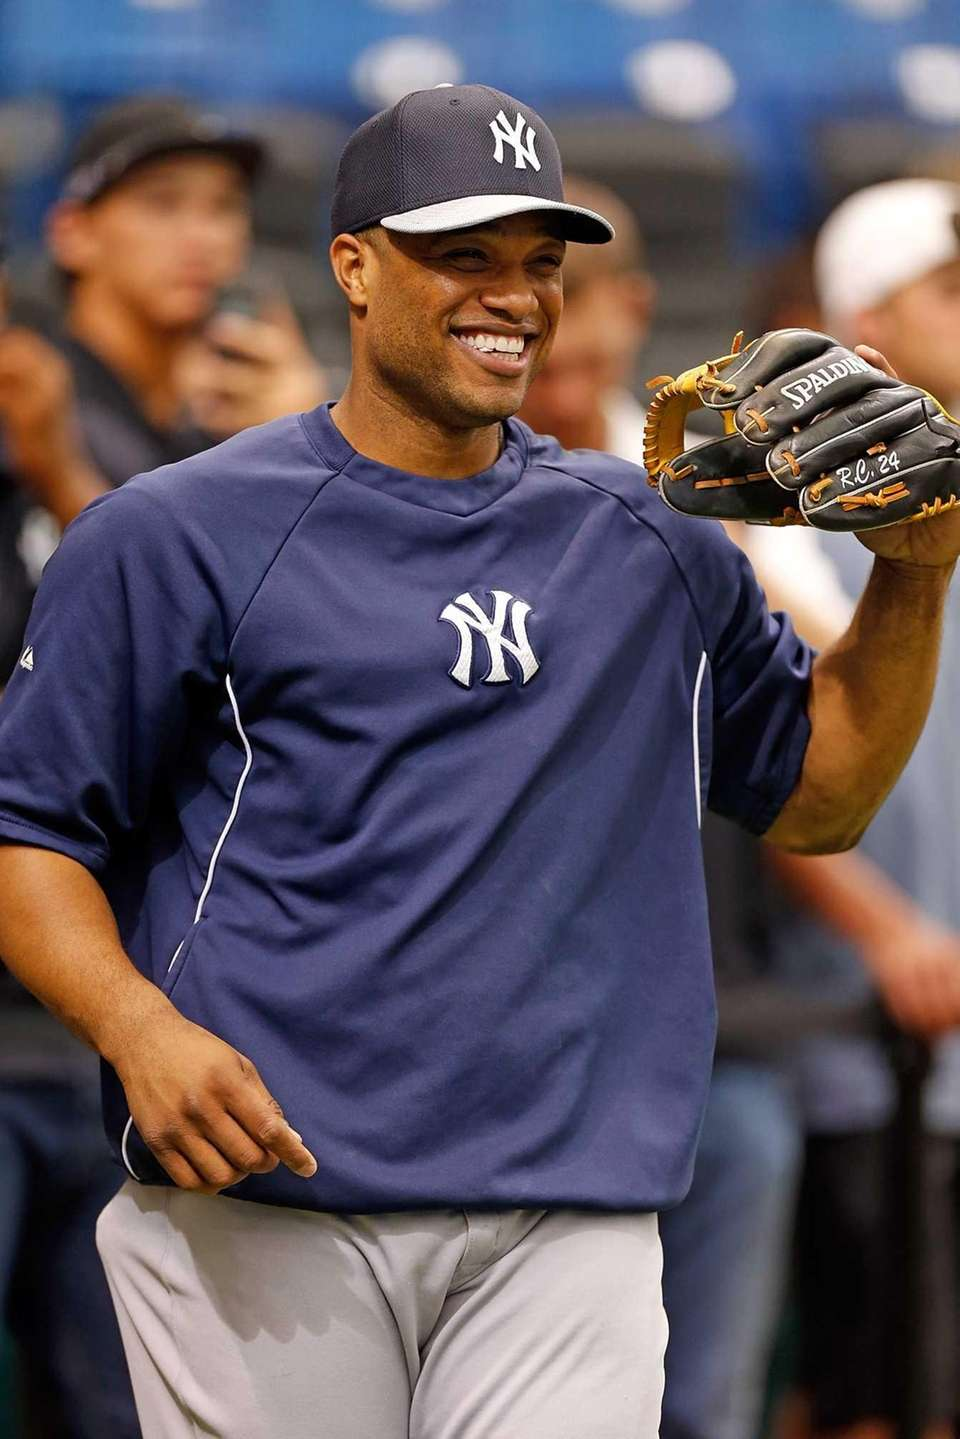 Infielder Robinson Cano of the Yankees smiles as